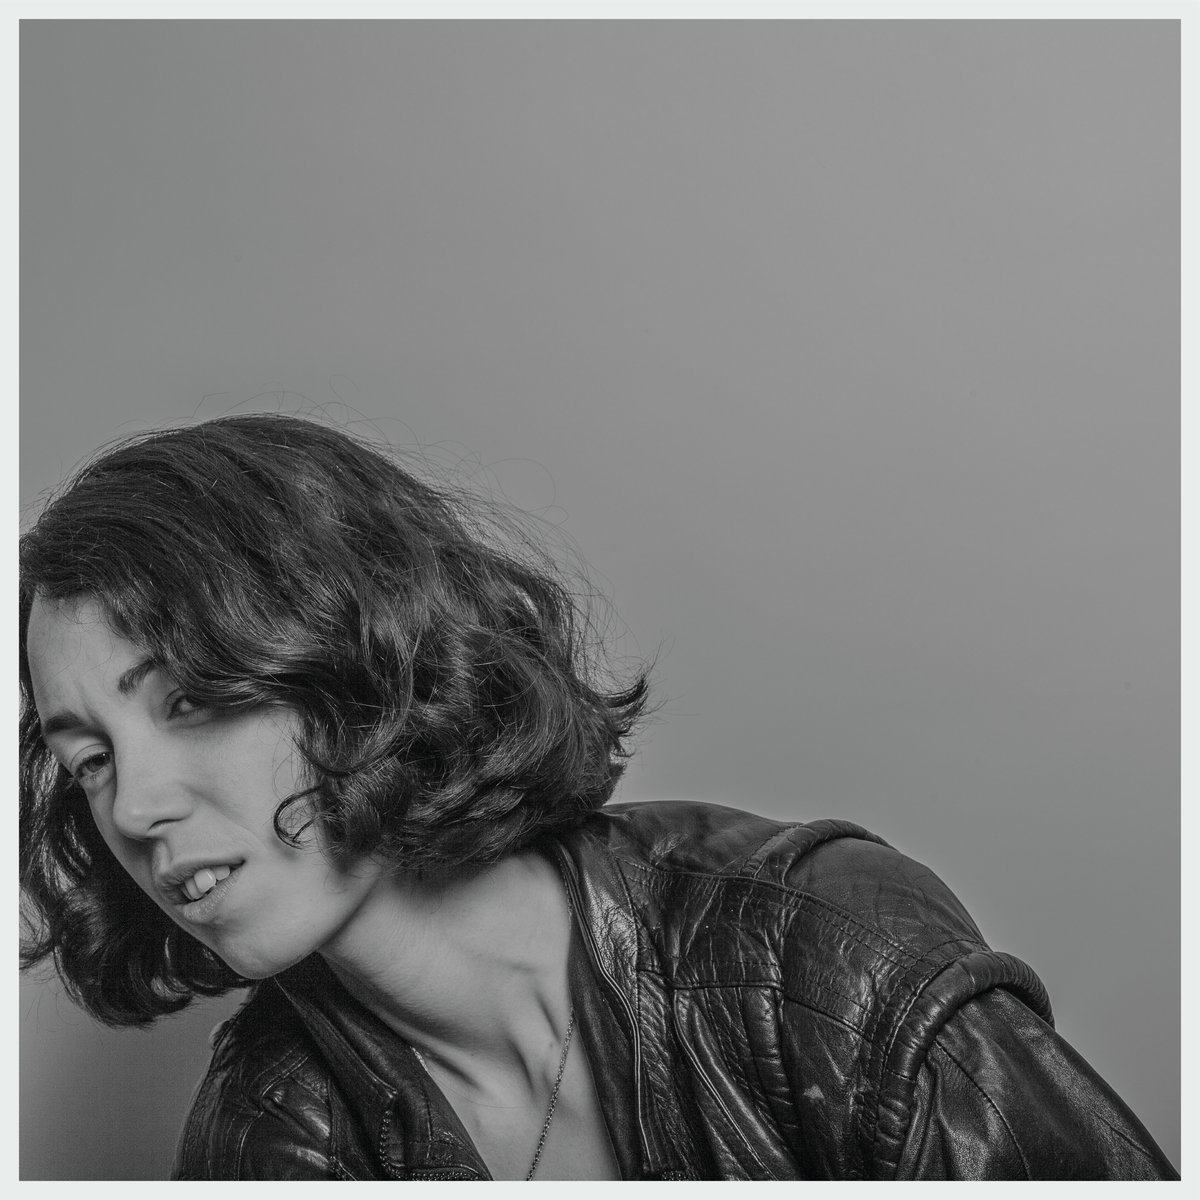 KELLY LEE OWENS - KELLY LEE OWENS (SMALLTOWN SUPERSOUND, 2017)